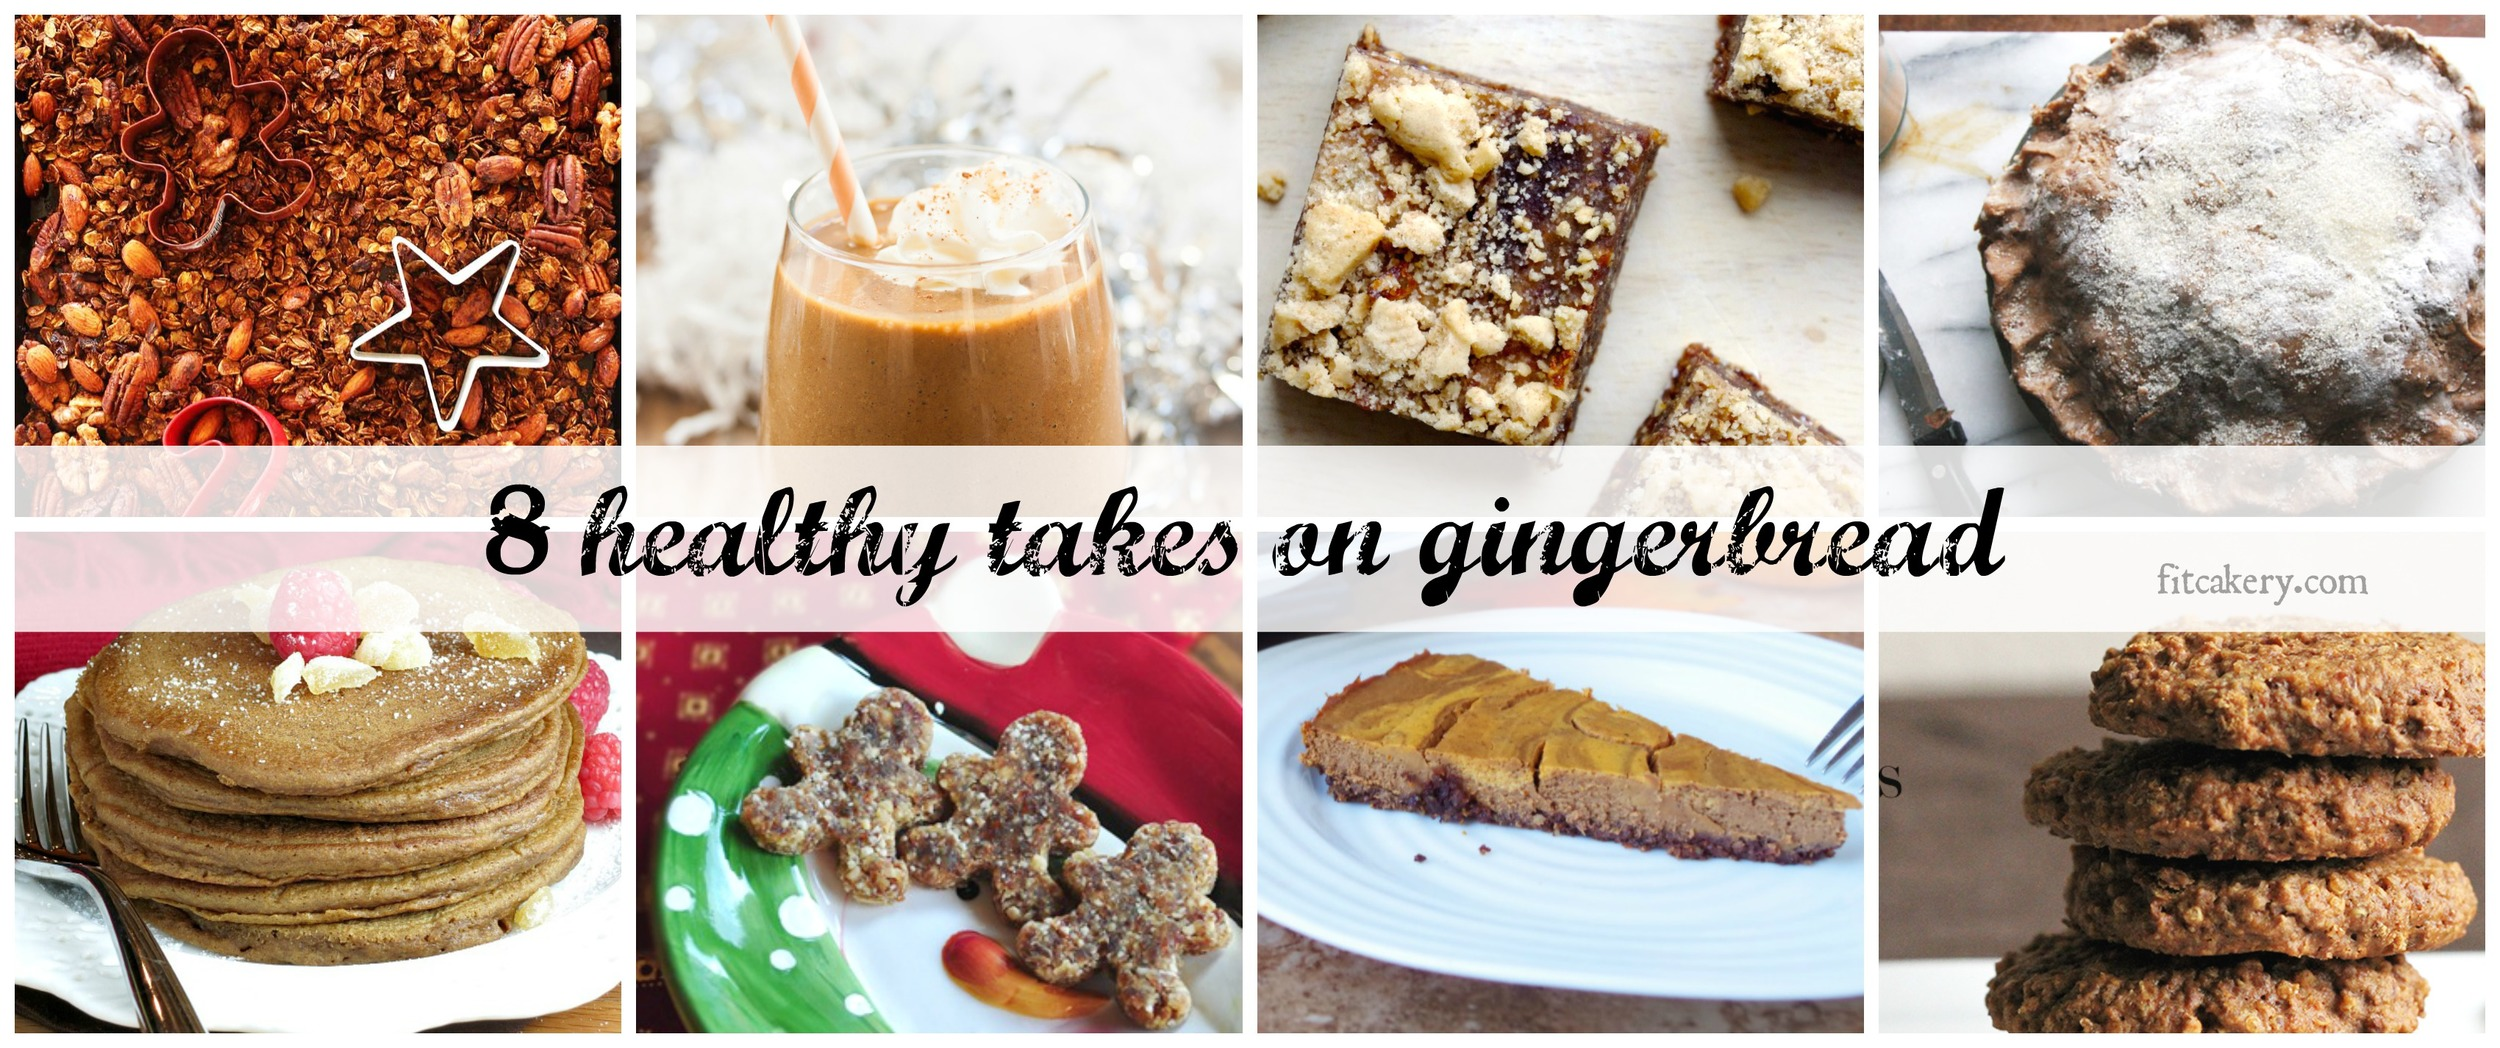 8 ways to have your gingerbread this holiday season - and all of them are good for you! #healthyholidays